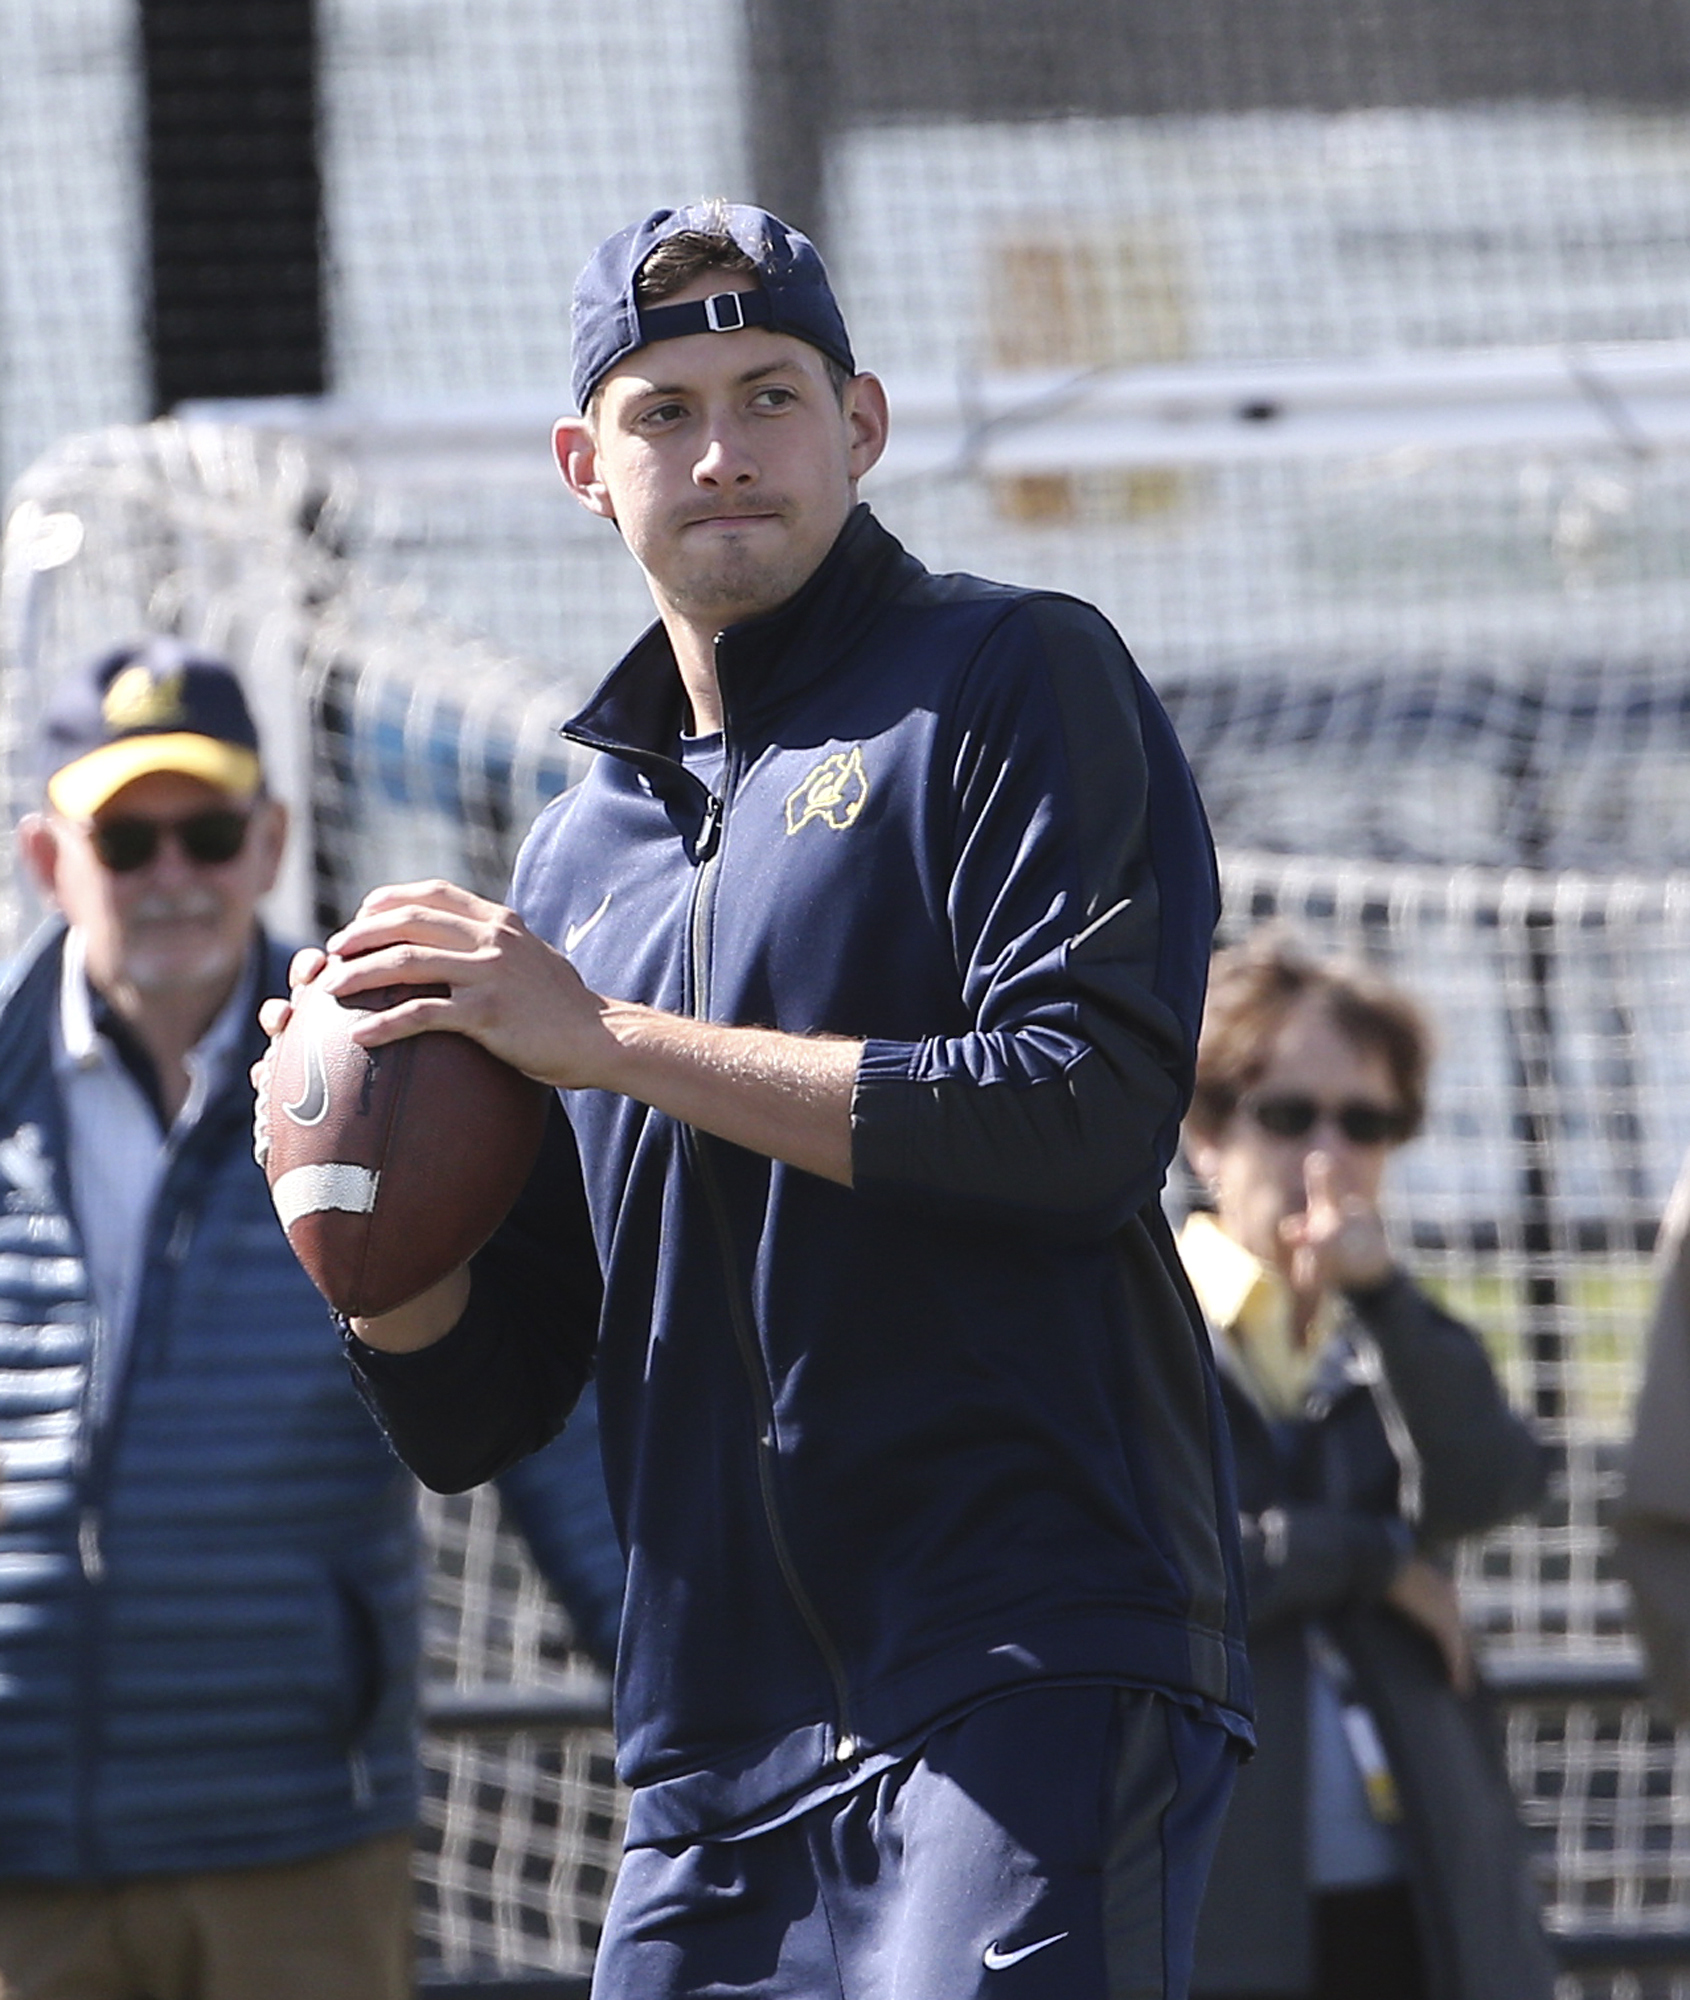 Cal Bears quarterback Davis Webb prepares to throws a ball during a walk through training session at a field in Sydney Thursday, Aug. 25, 2016. Cal will play Hawaii in the first college football game of the 2016 season at the College Football Sydney Cup o